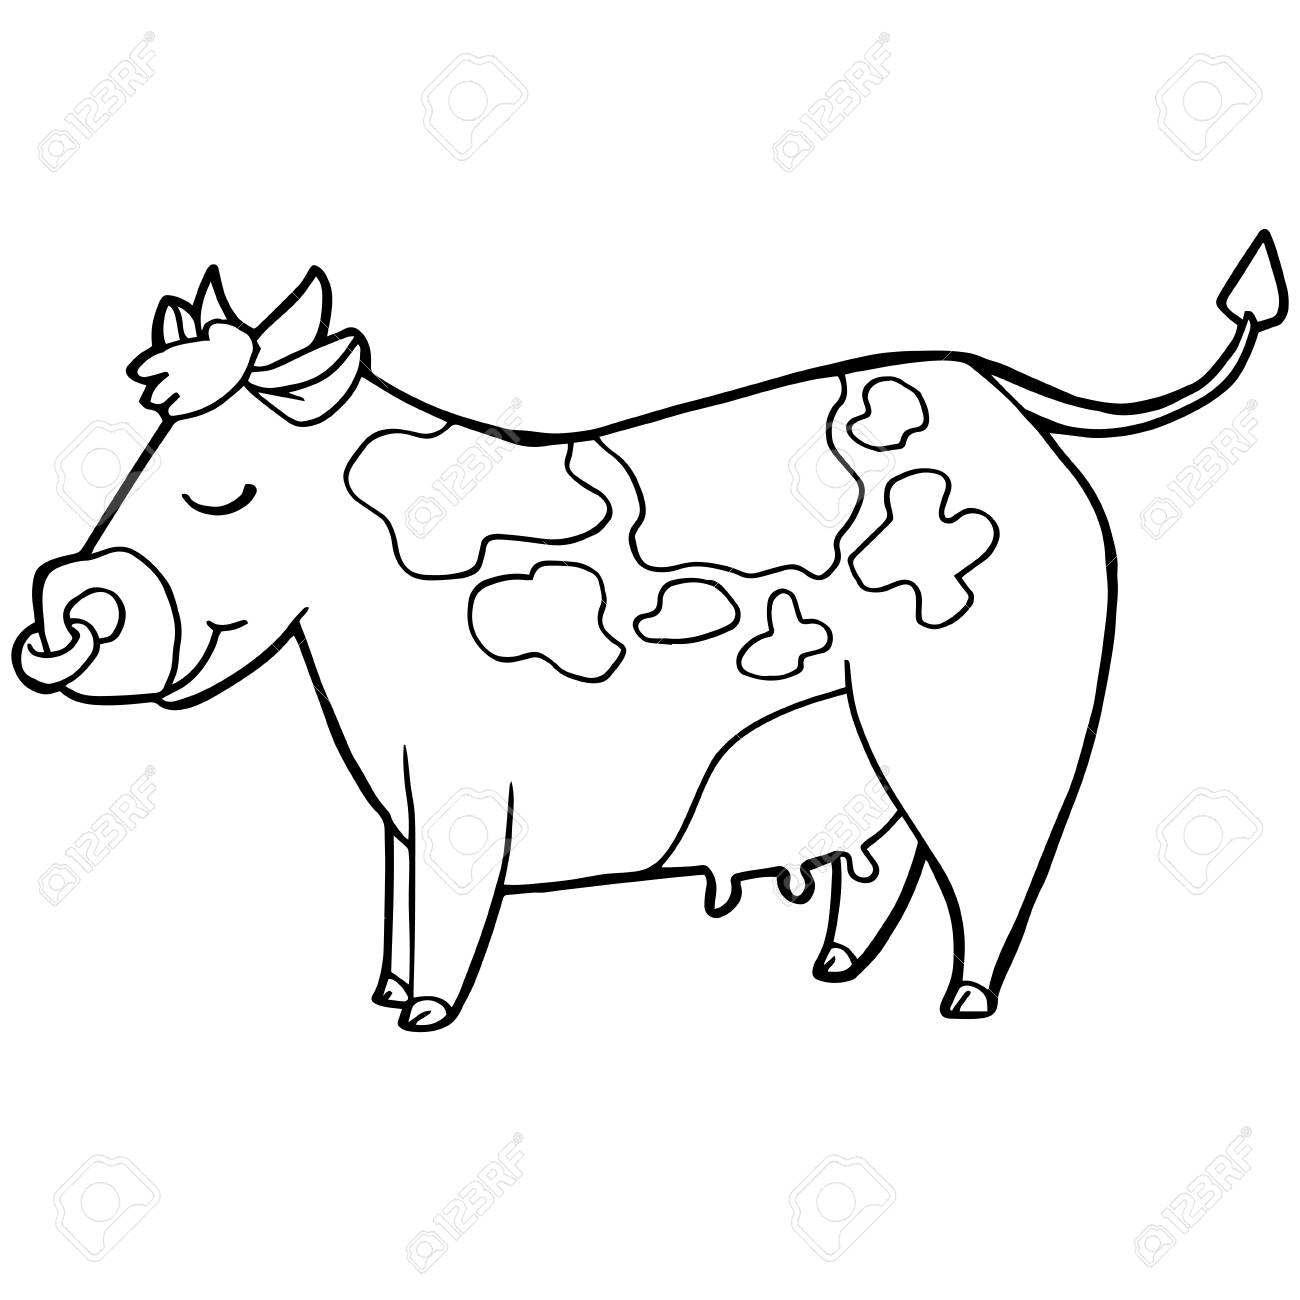 cartoon cute cattle or cow coloring page vector illustration royalty